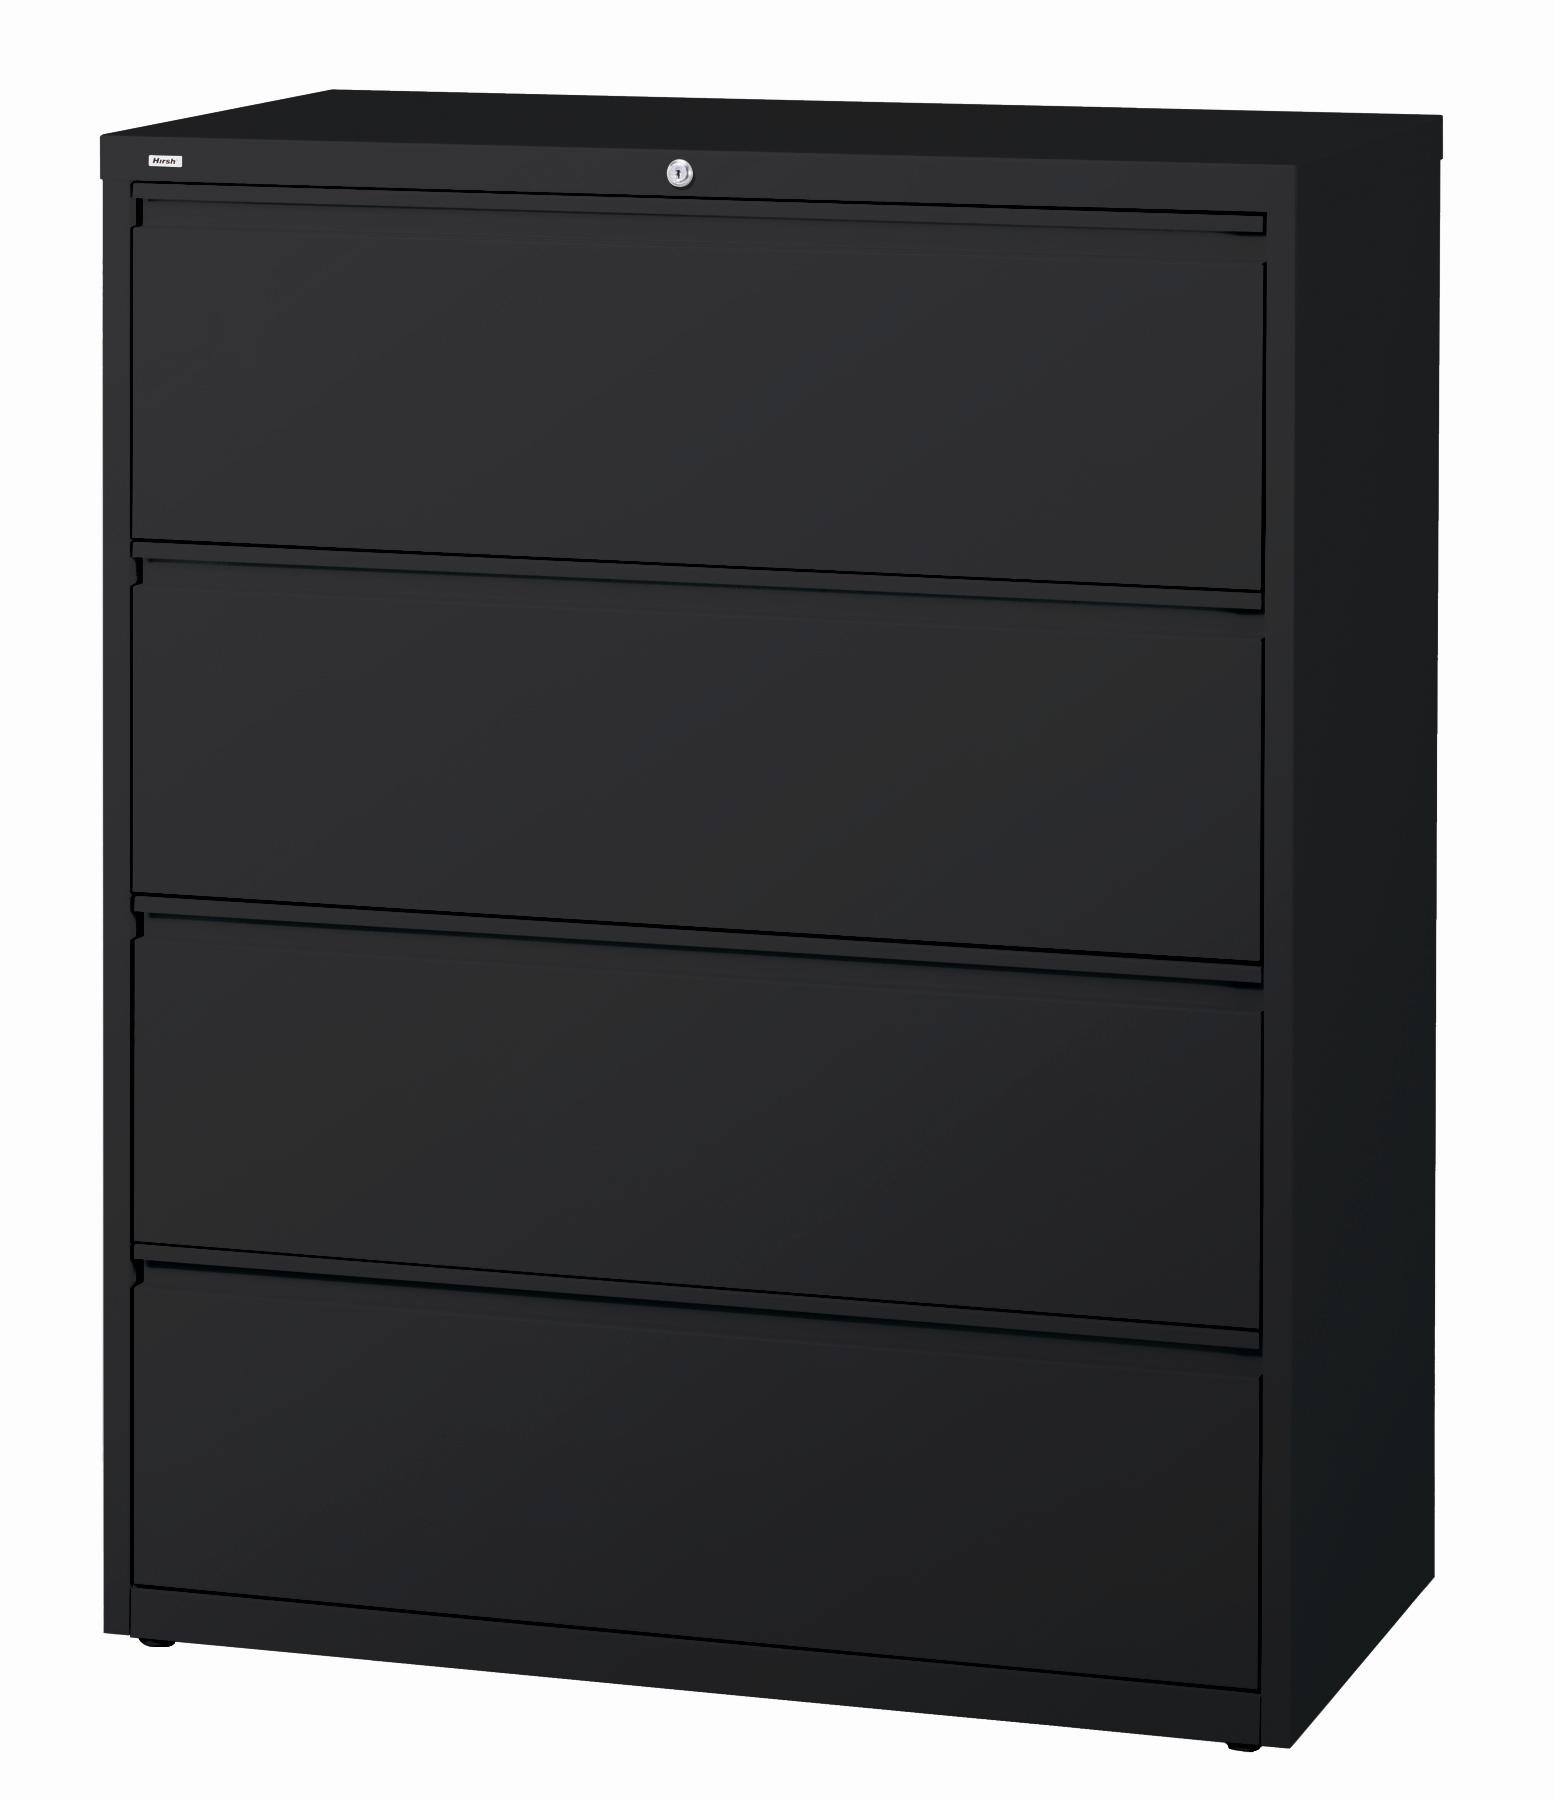 Hirsh HL10000 Series 42-inch Wide 4-drawer Commercial Lateral File Cabinet - Thumbnail 1